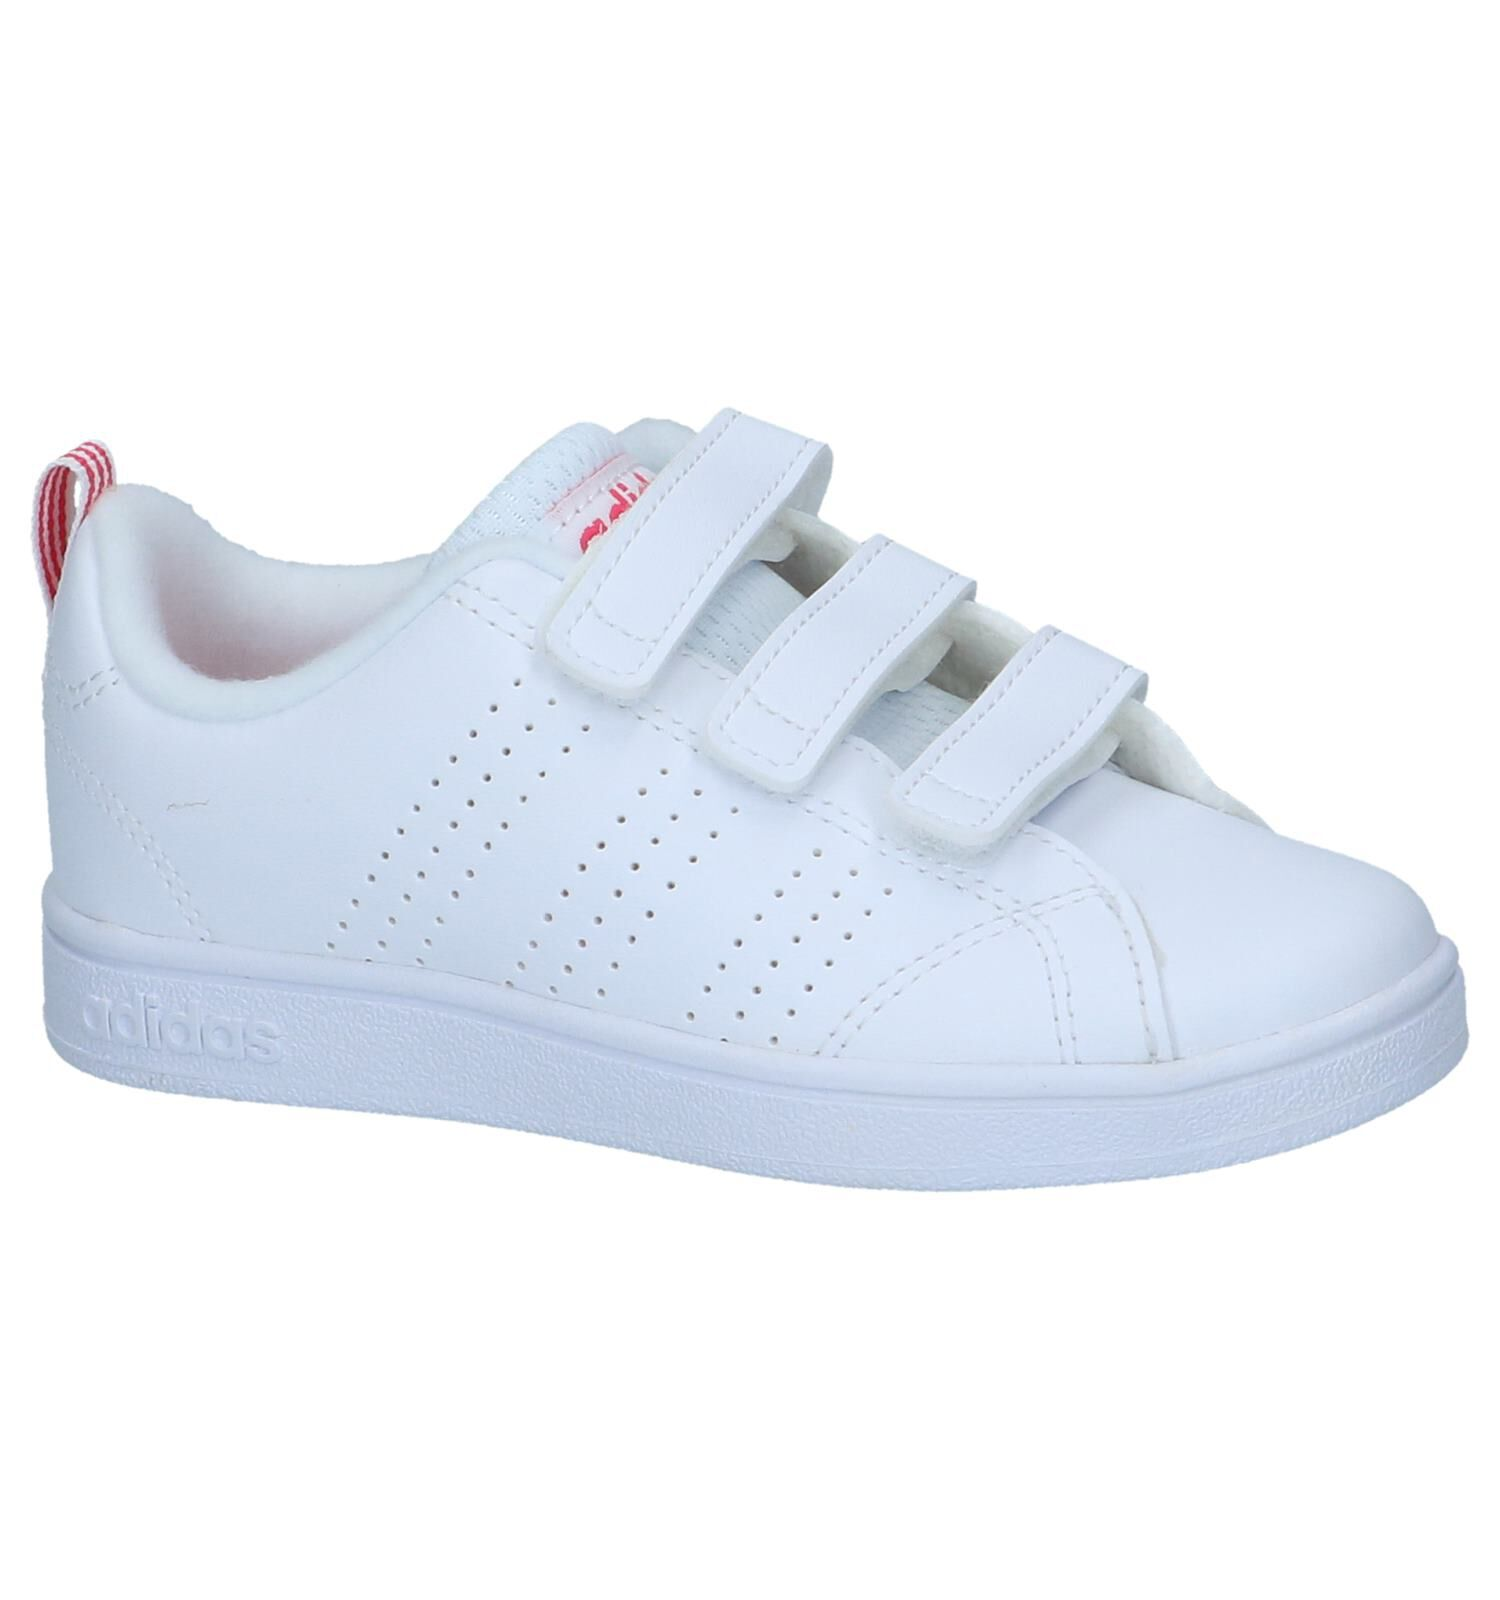 Witte Sneakers adidas VS Advantage Clean